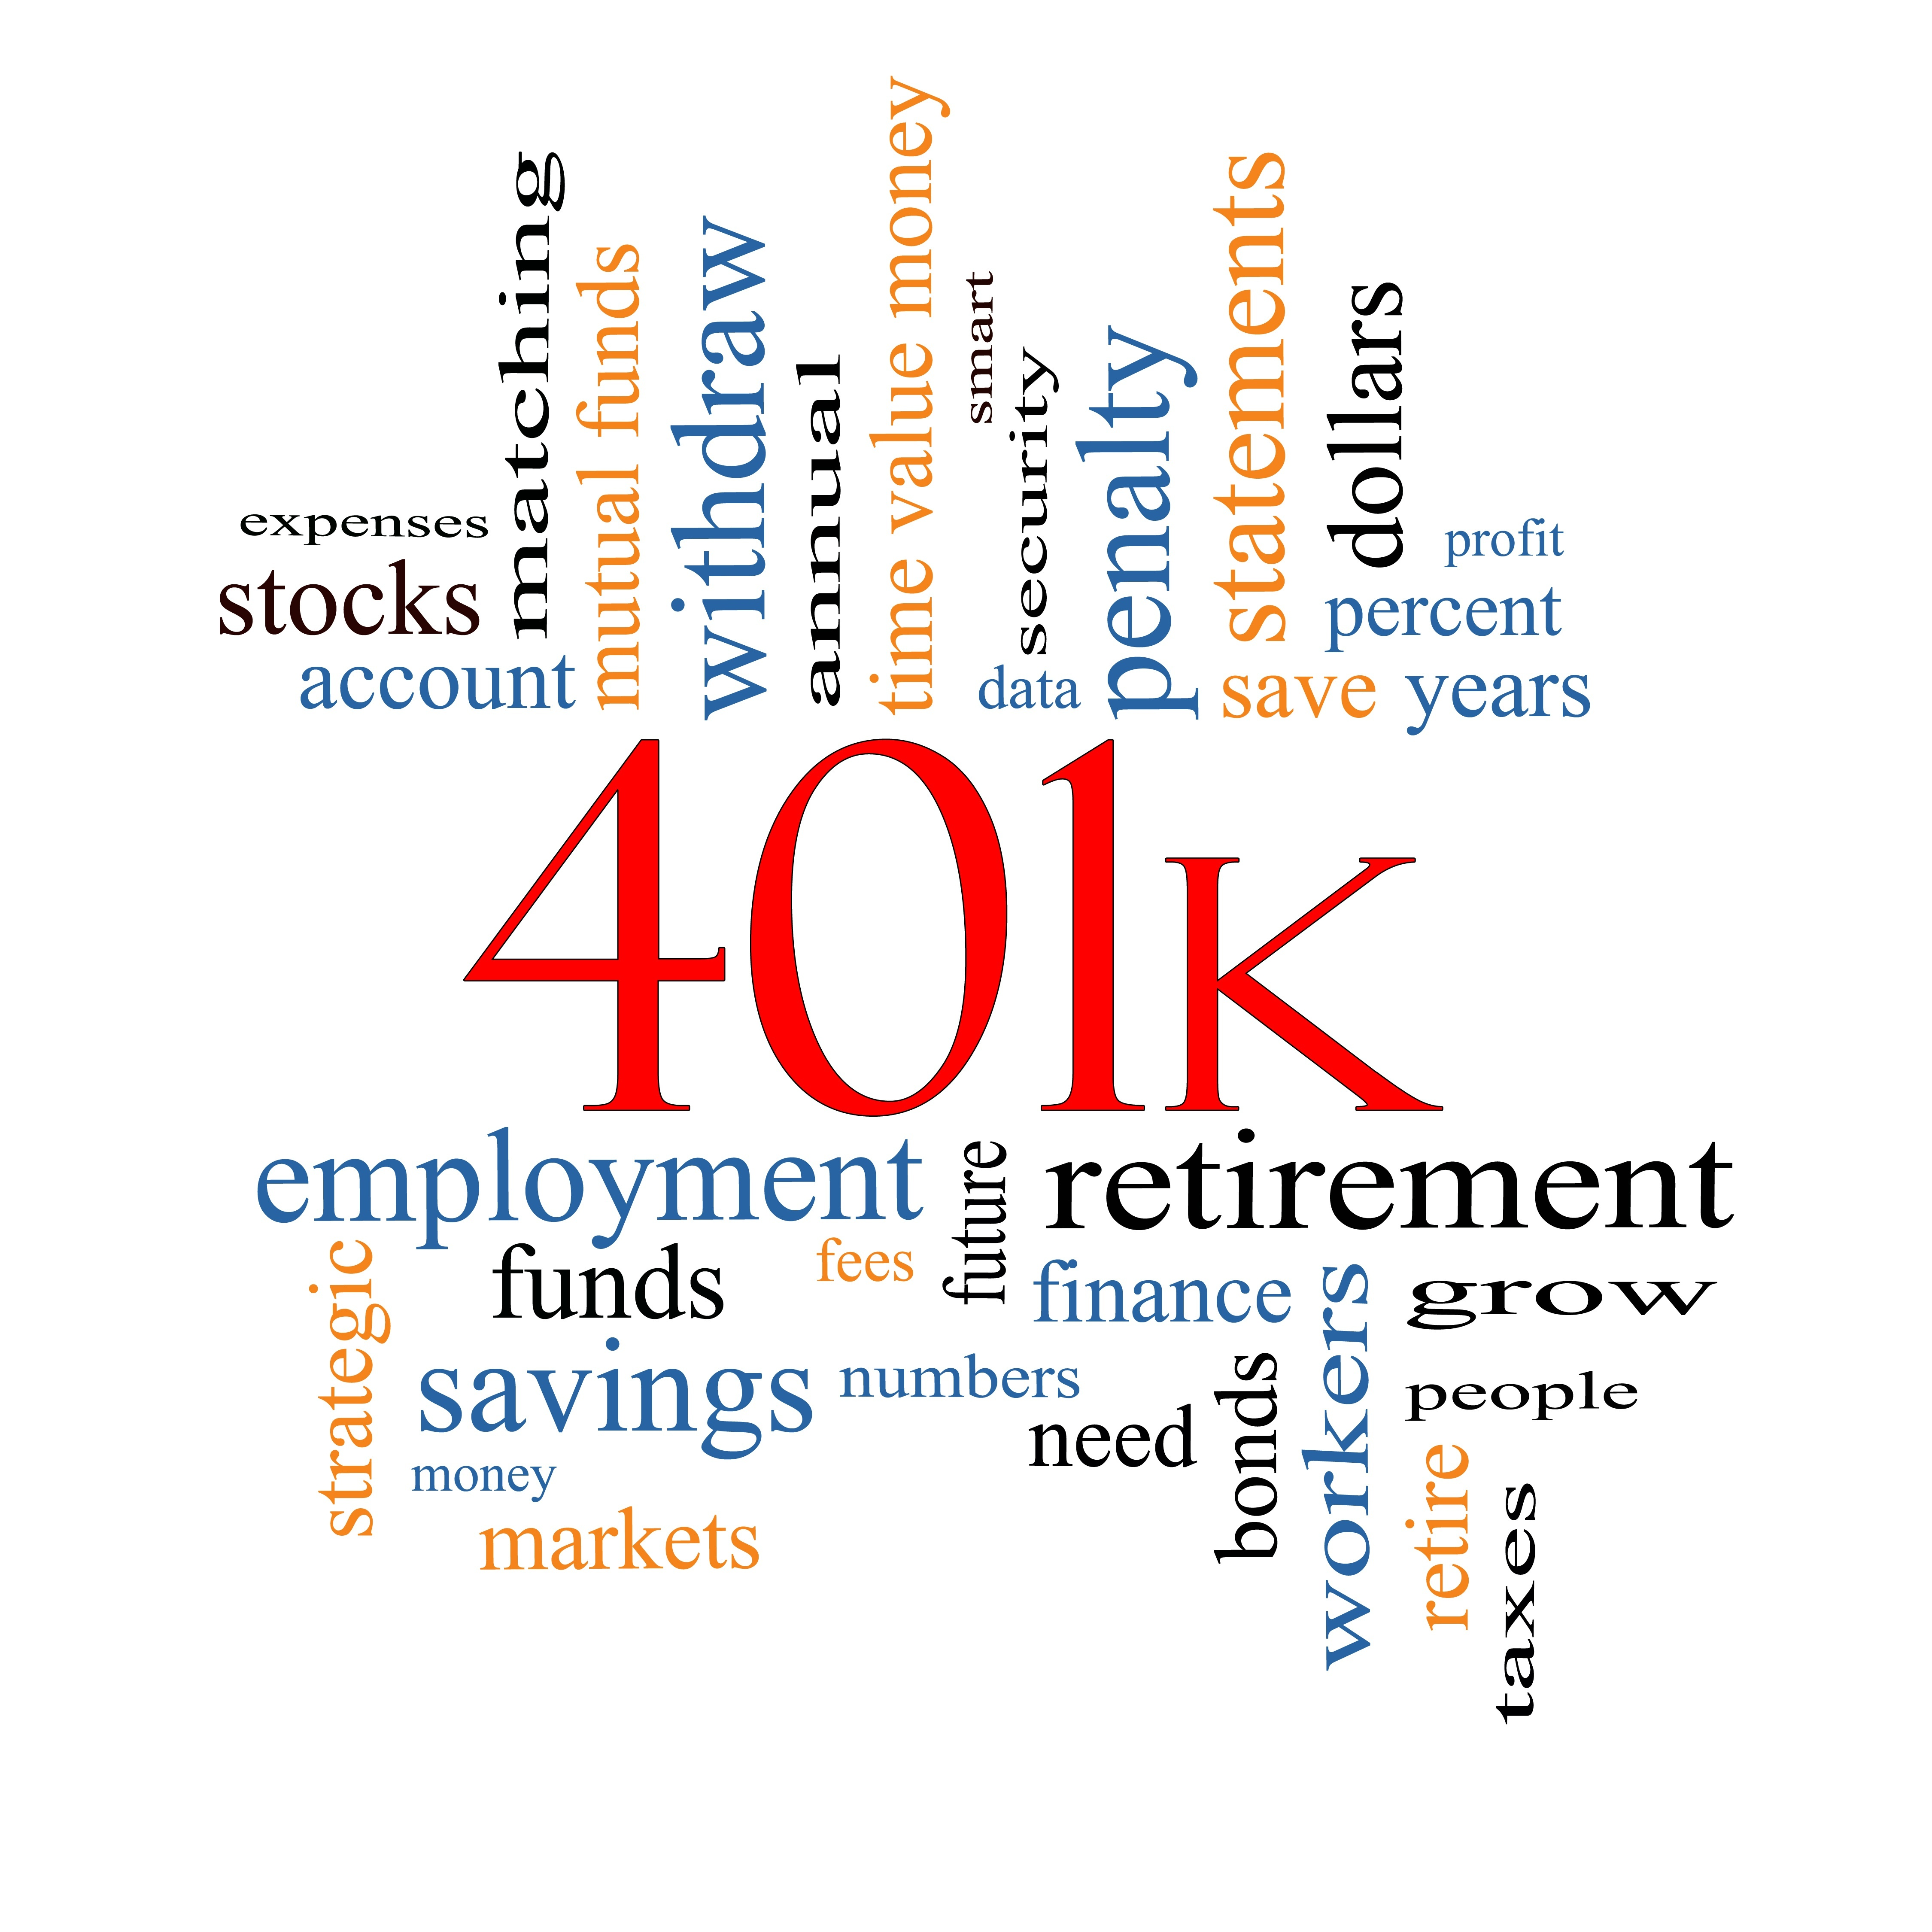 Retirement Accounts  Msmoney Personal Financial Empowerment. Portland State University Msw. Service Desk Ticketing Software. 360 Degree Review Software Google Home Loans. Safety Management Programs Pc Remote Support. Dish Tv Internet Reviews Ford In Lancaster Pa. Create My Own Music Website Family Lawyer Az. Online Personal Training Programs. What Is The Cost Of Bankruptcy